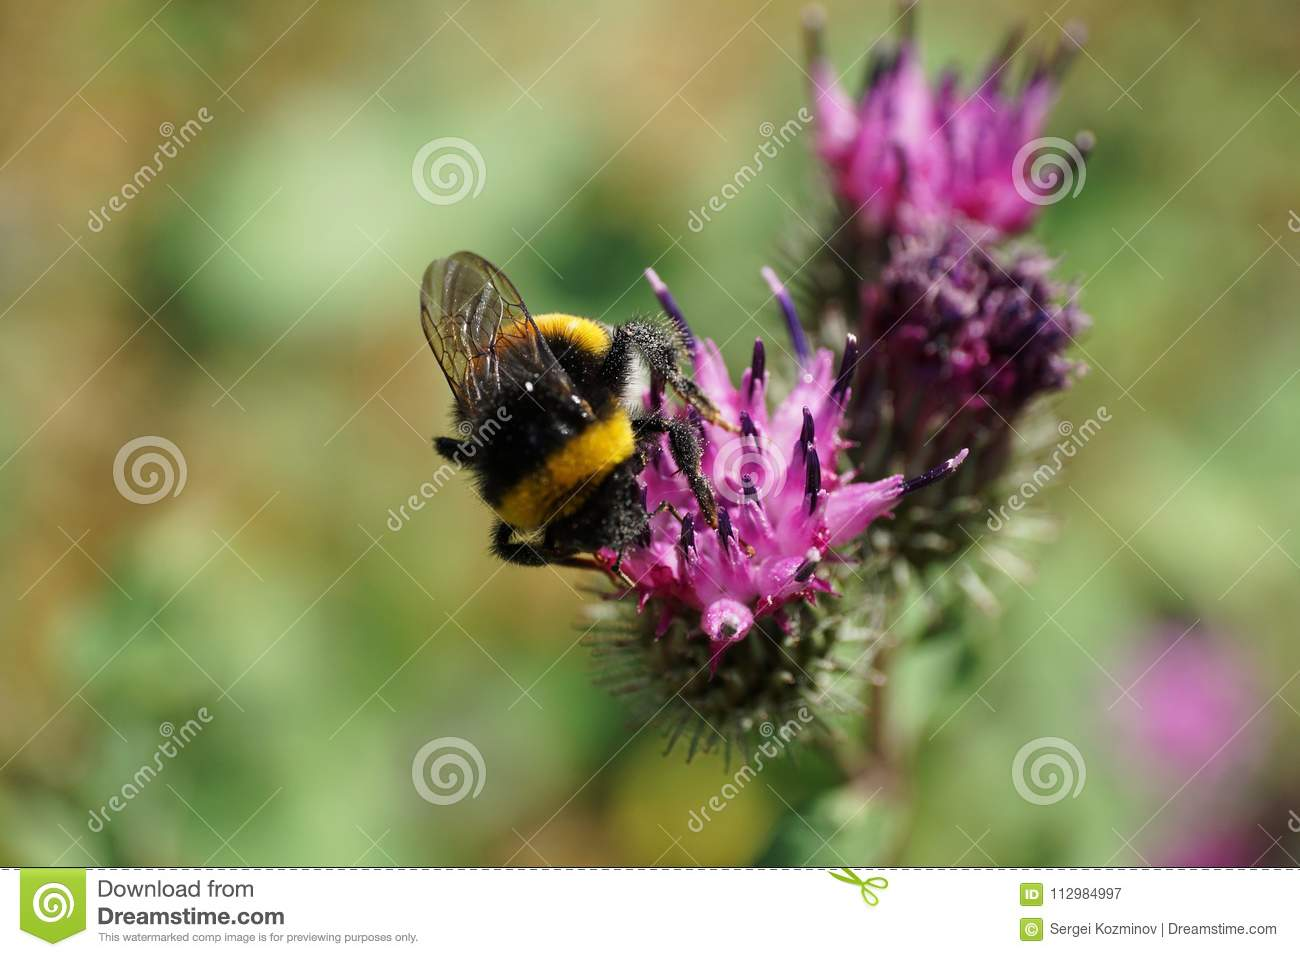 Close-up of fluffy striped bumblebee Bombus lucorum seated and collecting pollen